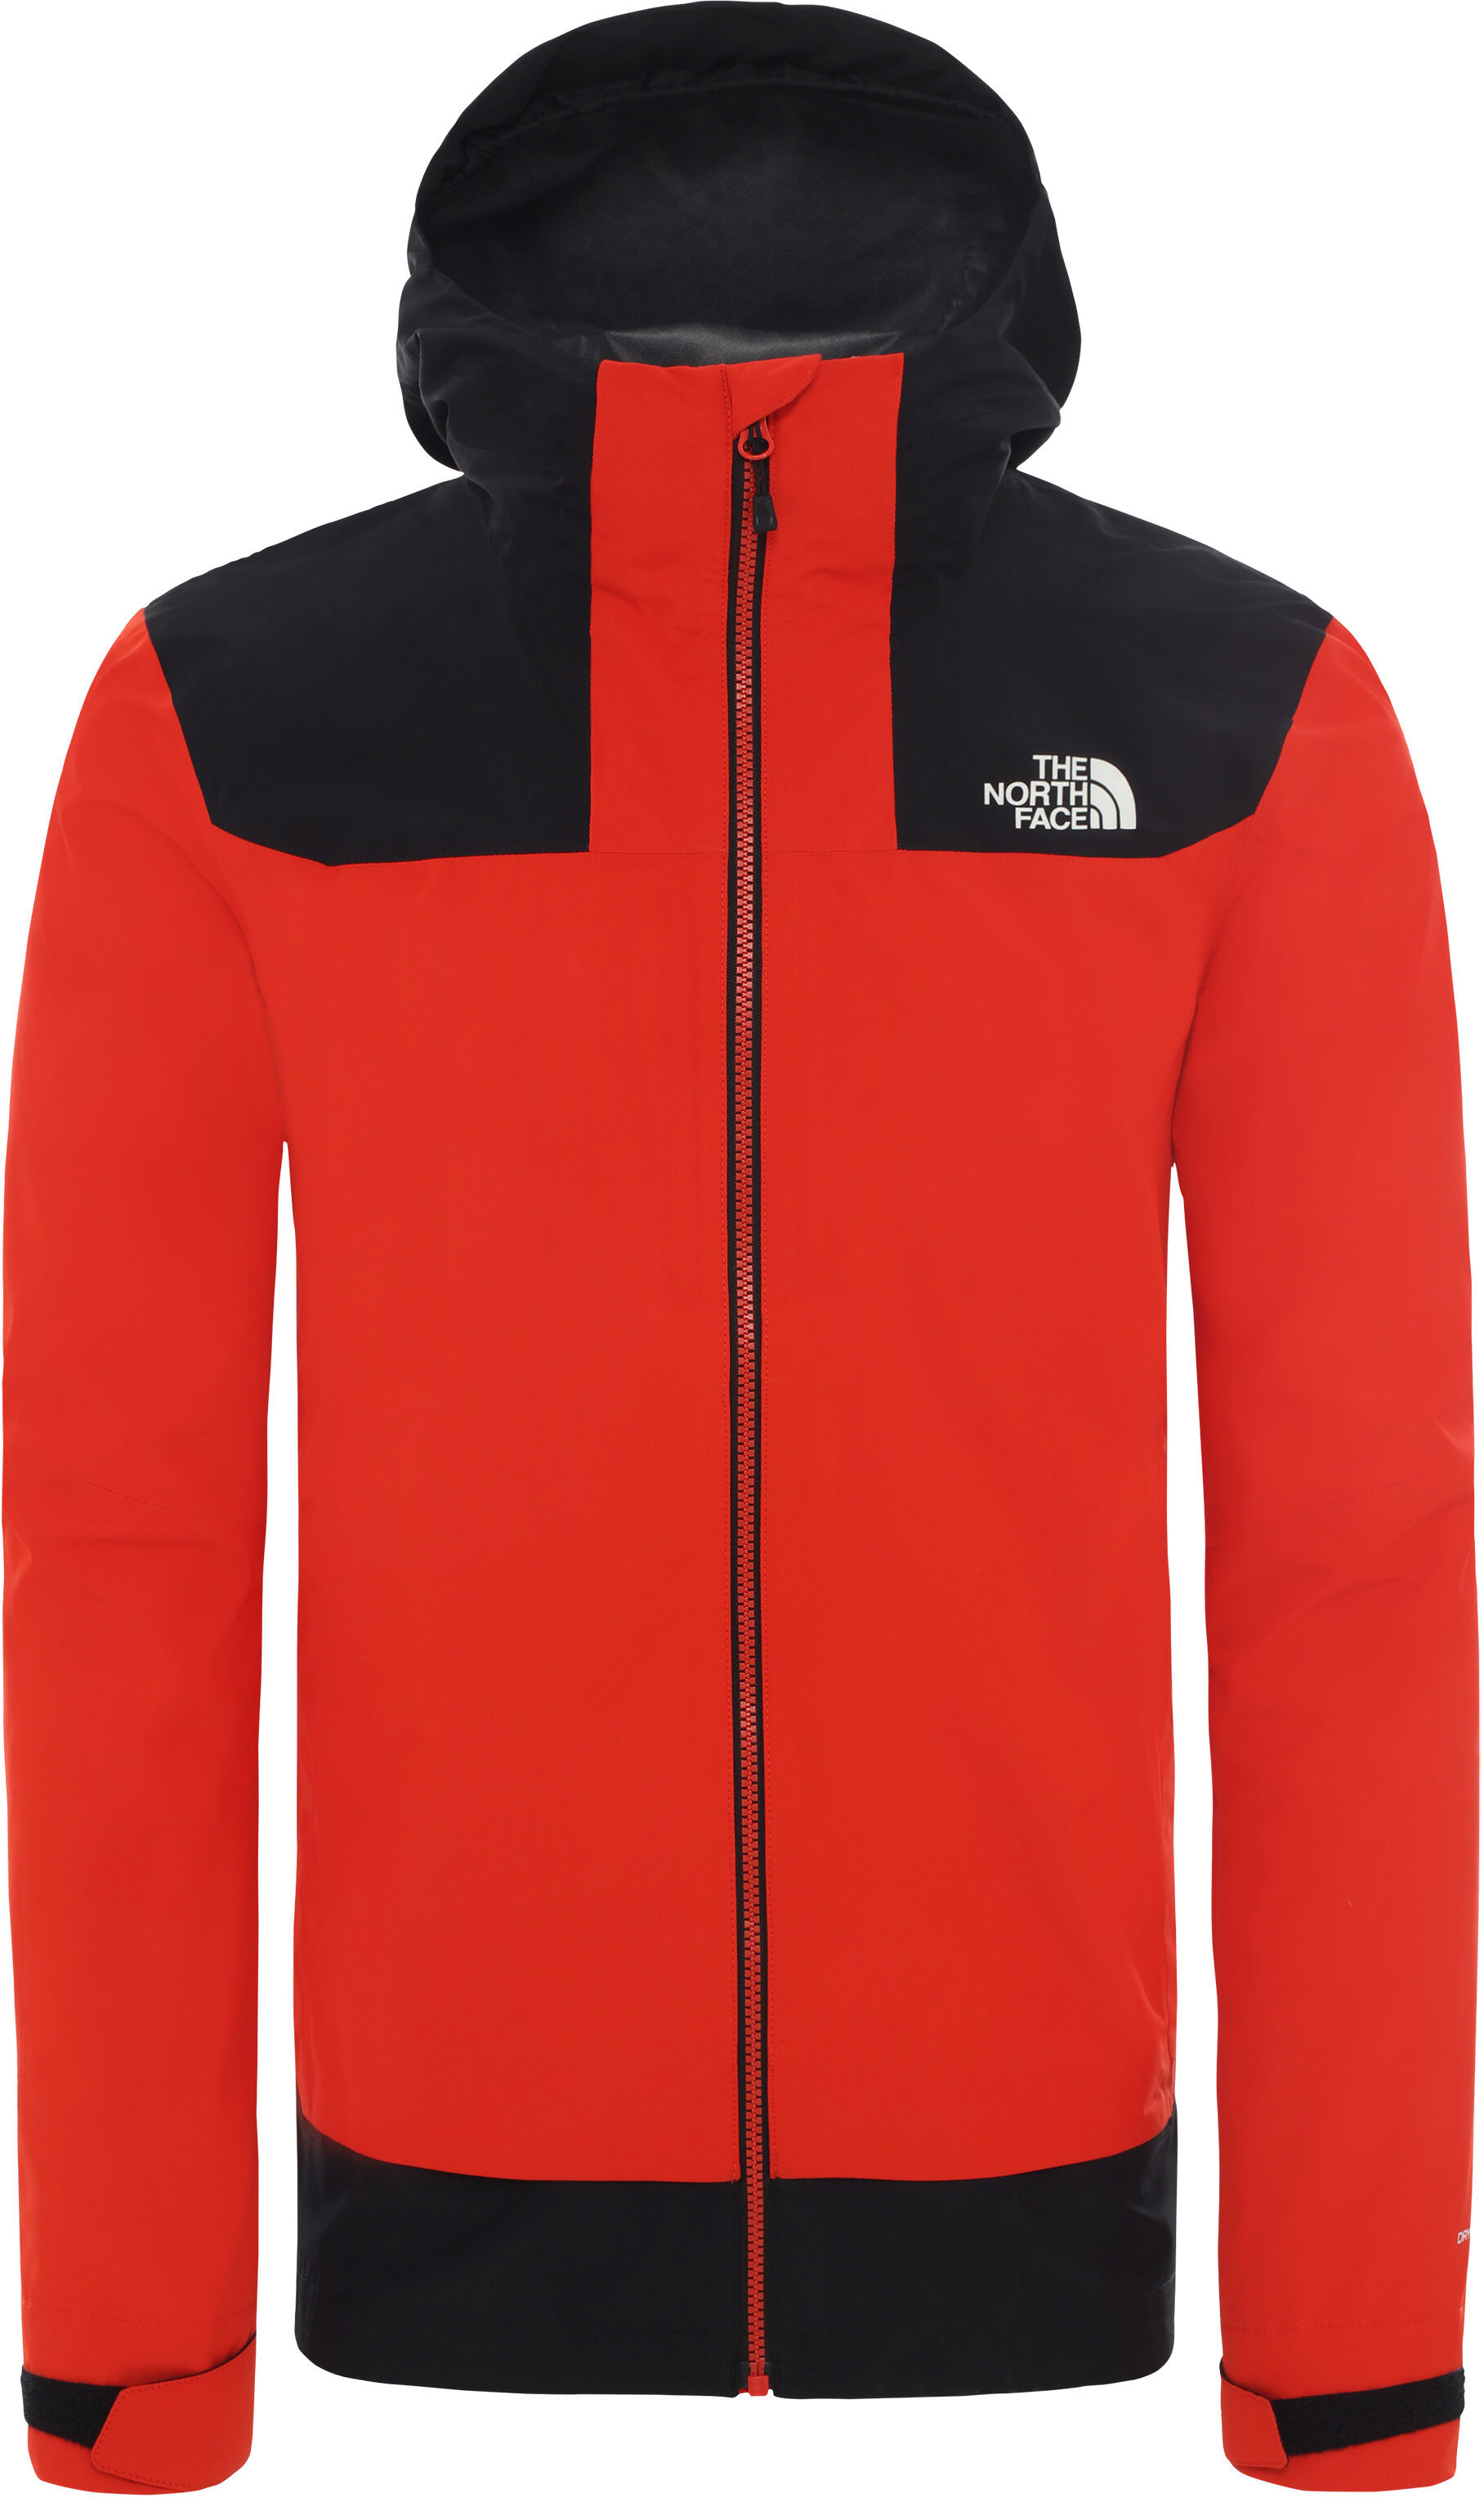 The North Face | INTERSPORT